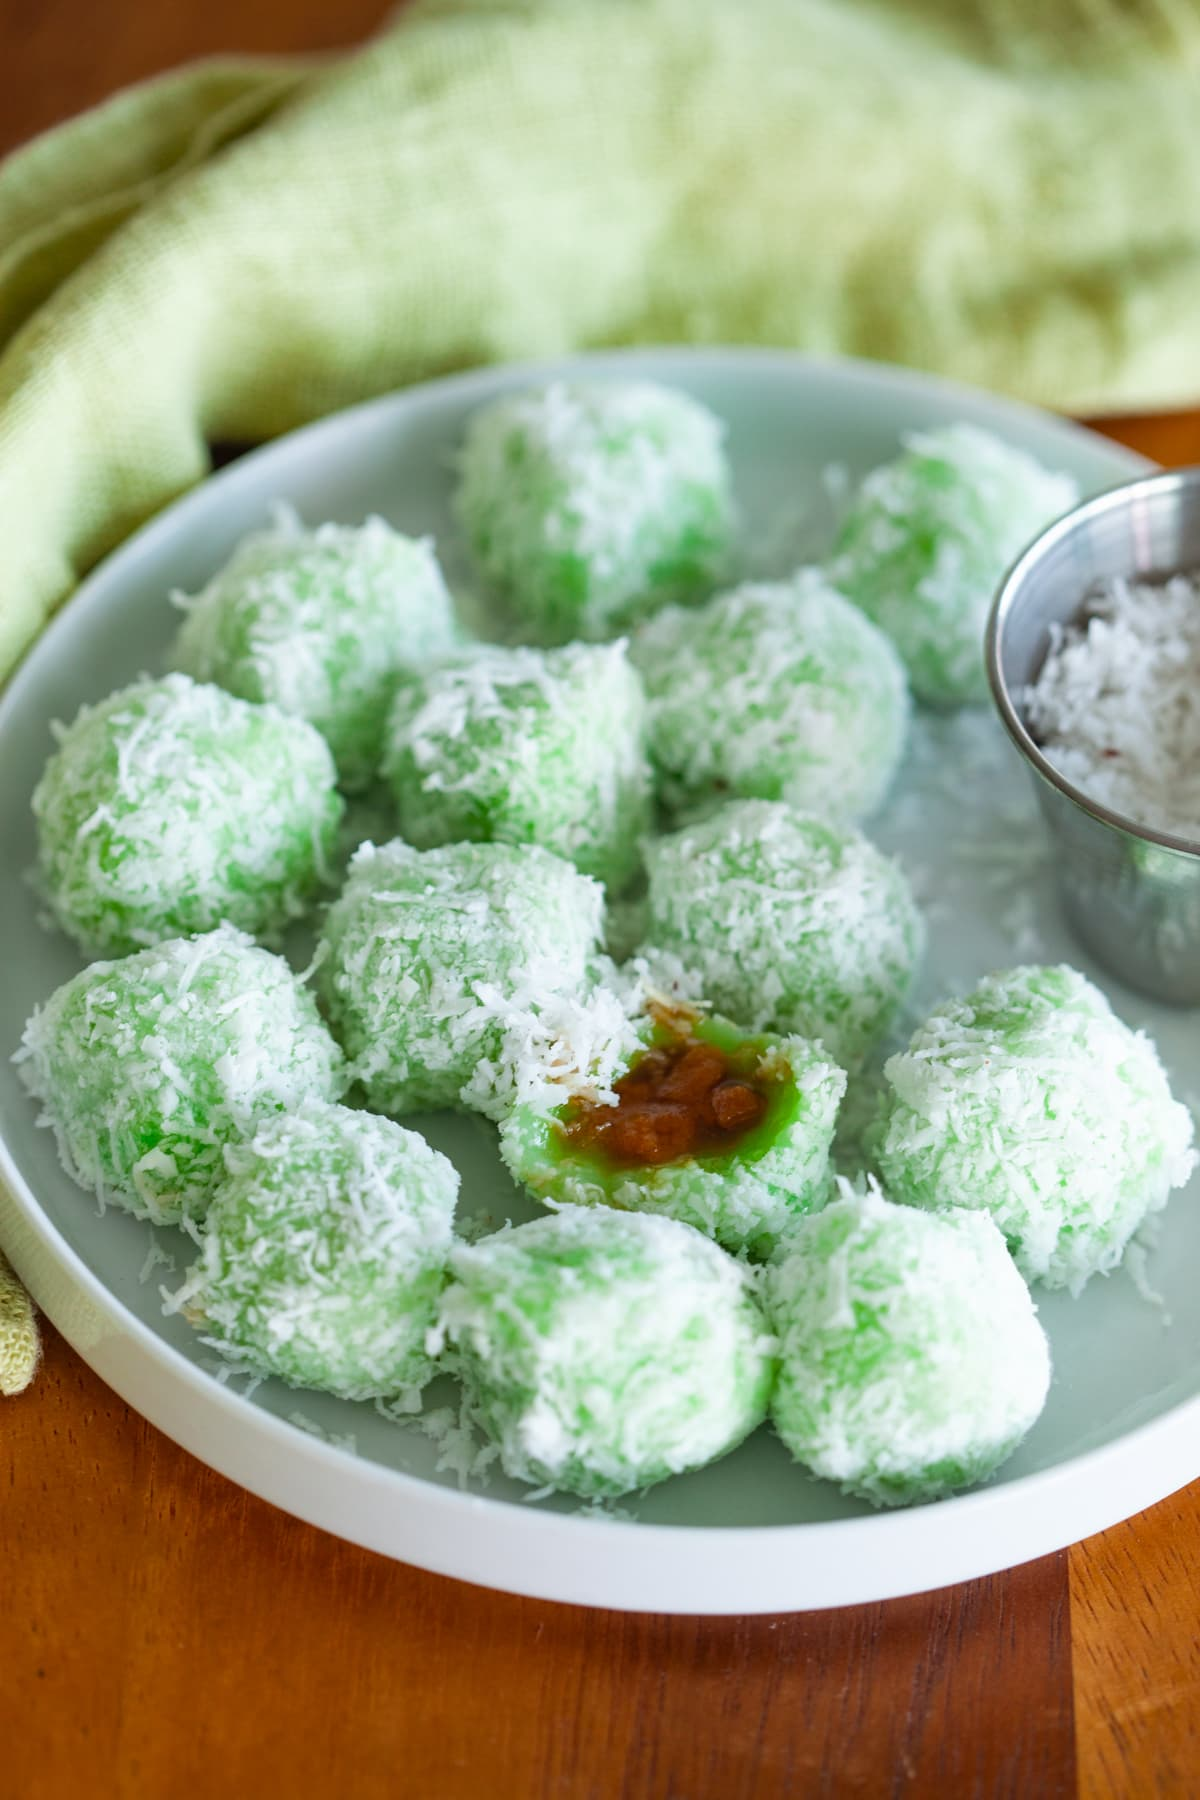 Onde-onde rolled in with some fresh grated coconut.